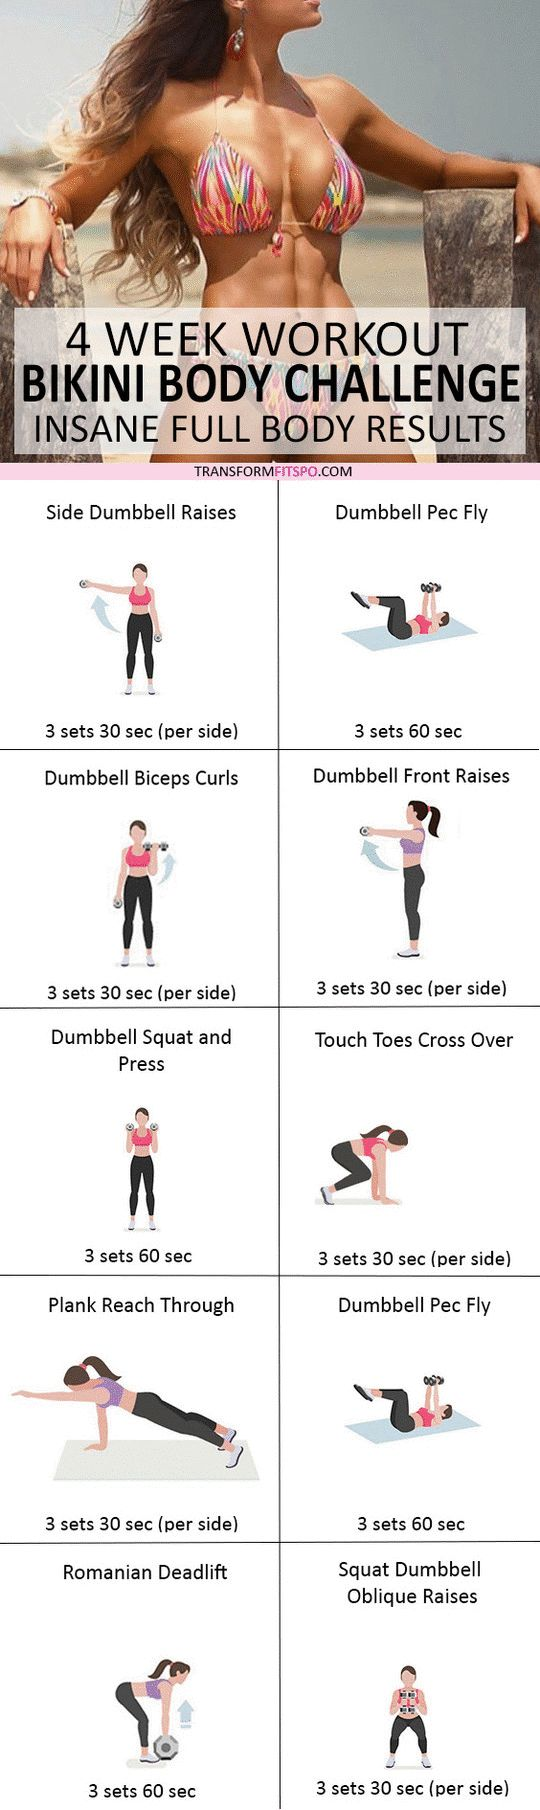 Full Body Workout | Posted By: CustomWeightLossProgram.com